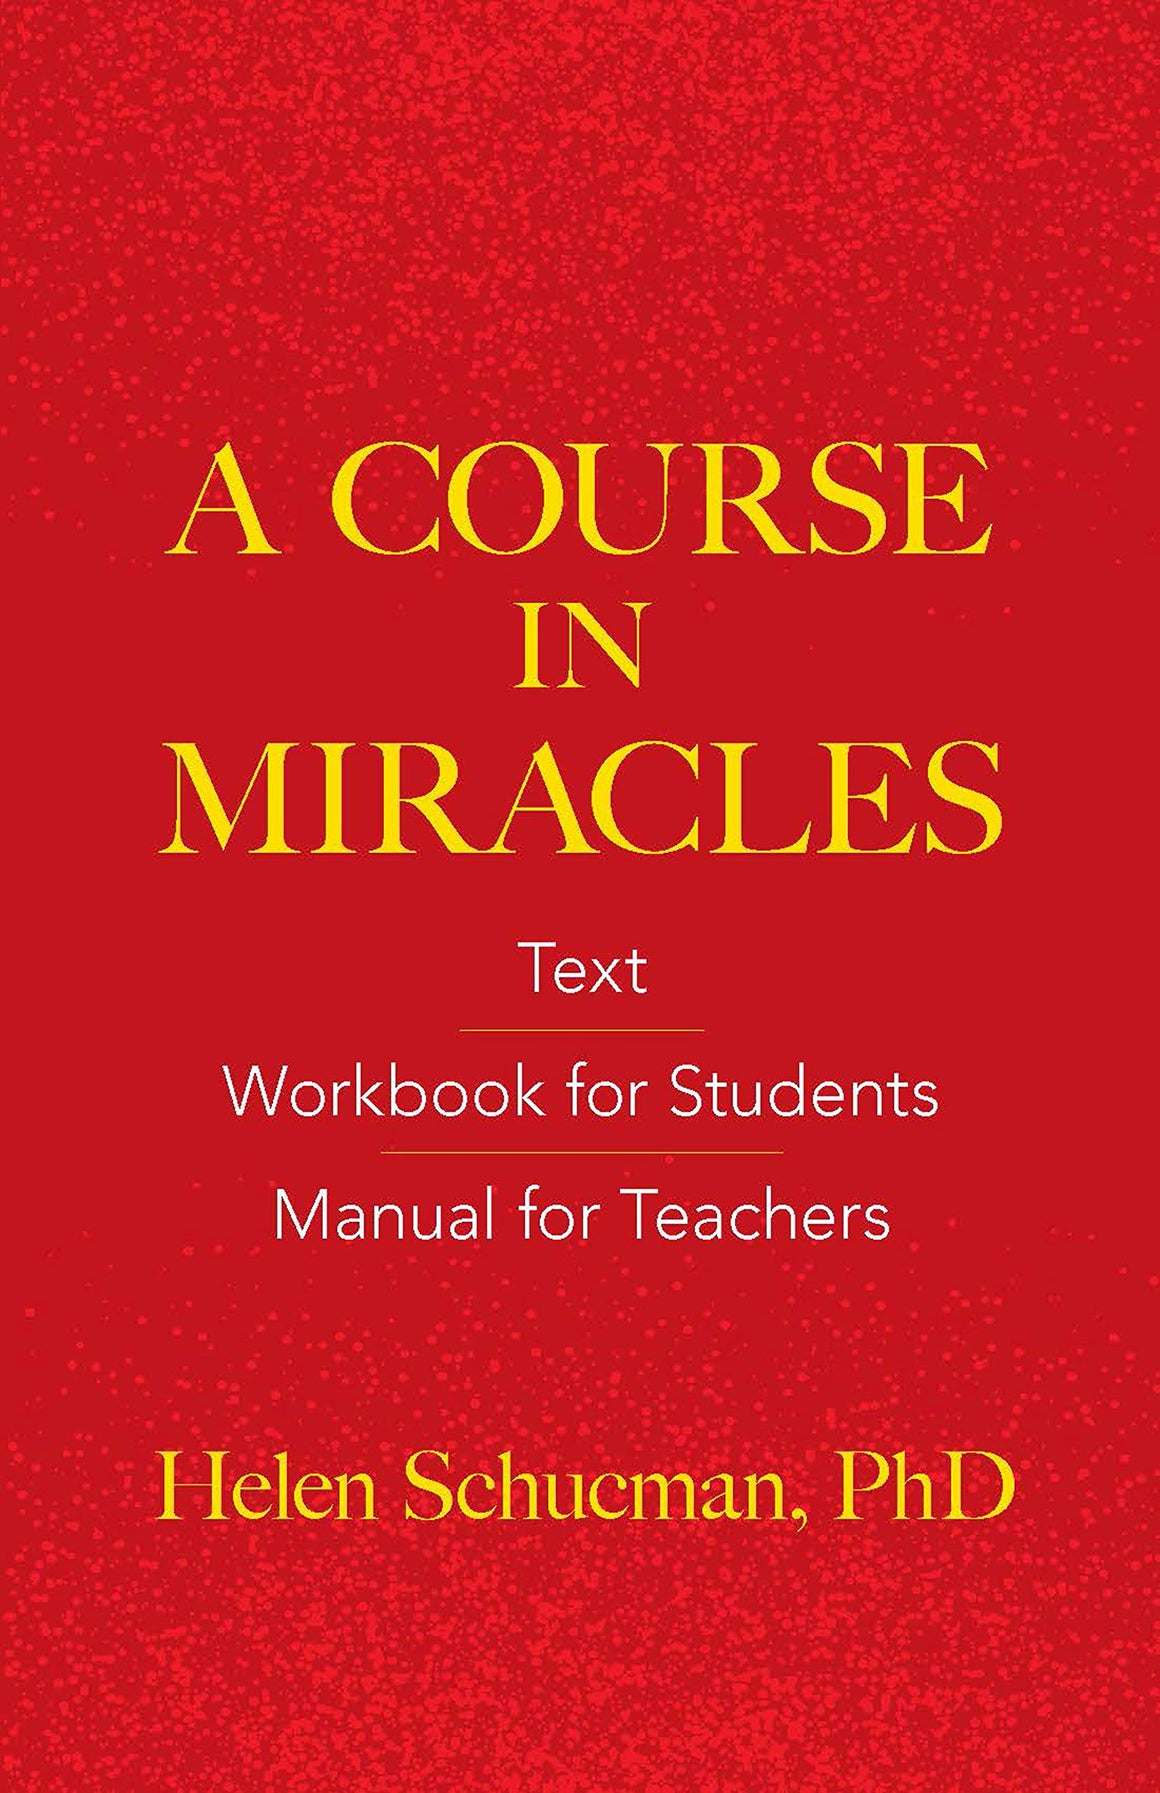 Course In Miracles: Text Workbook For Students Manual For by Helen Schucman